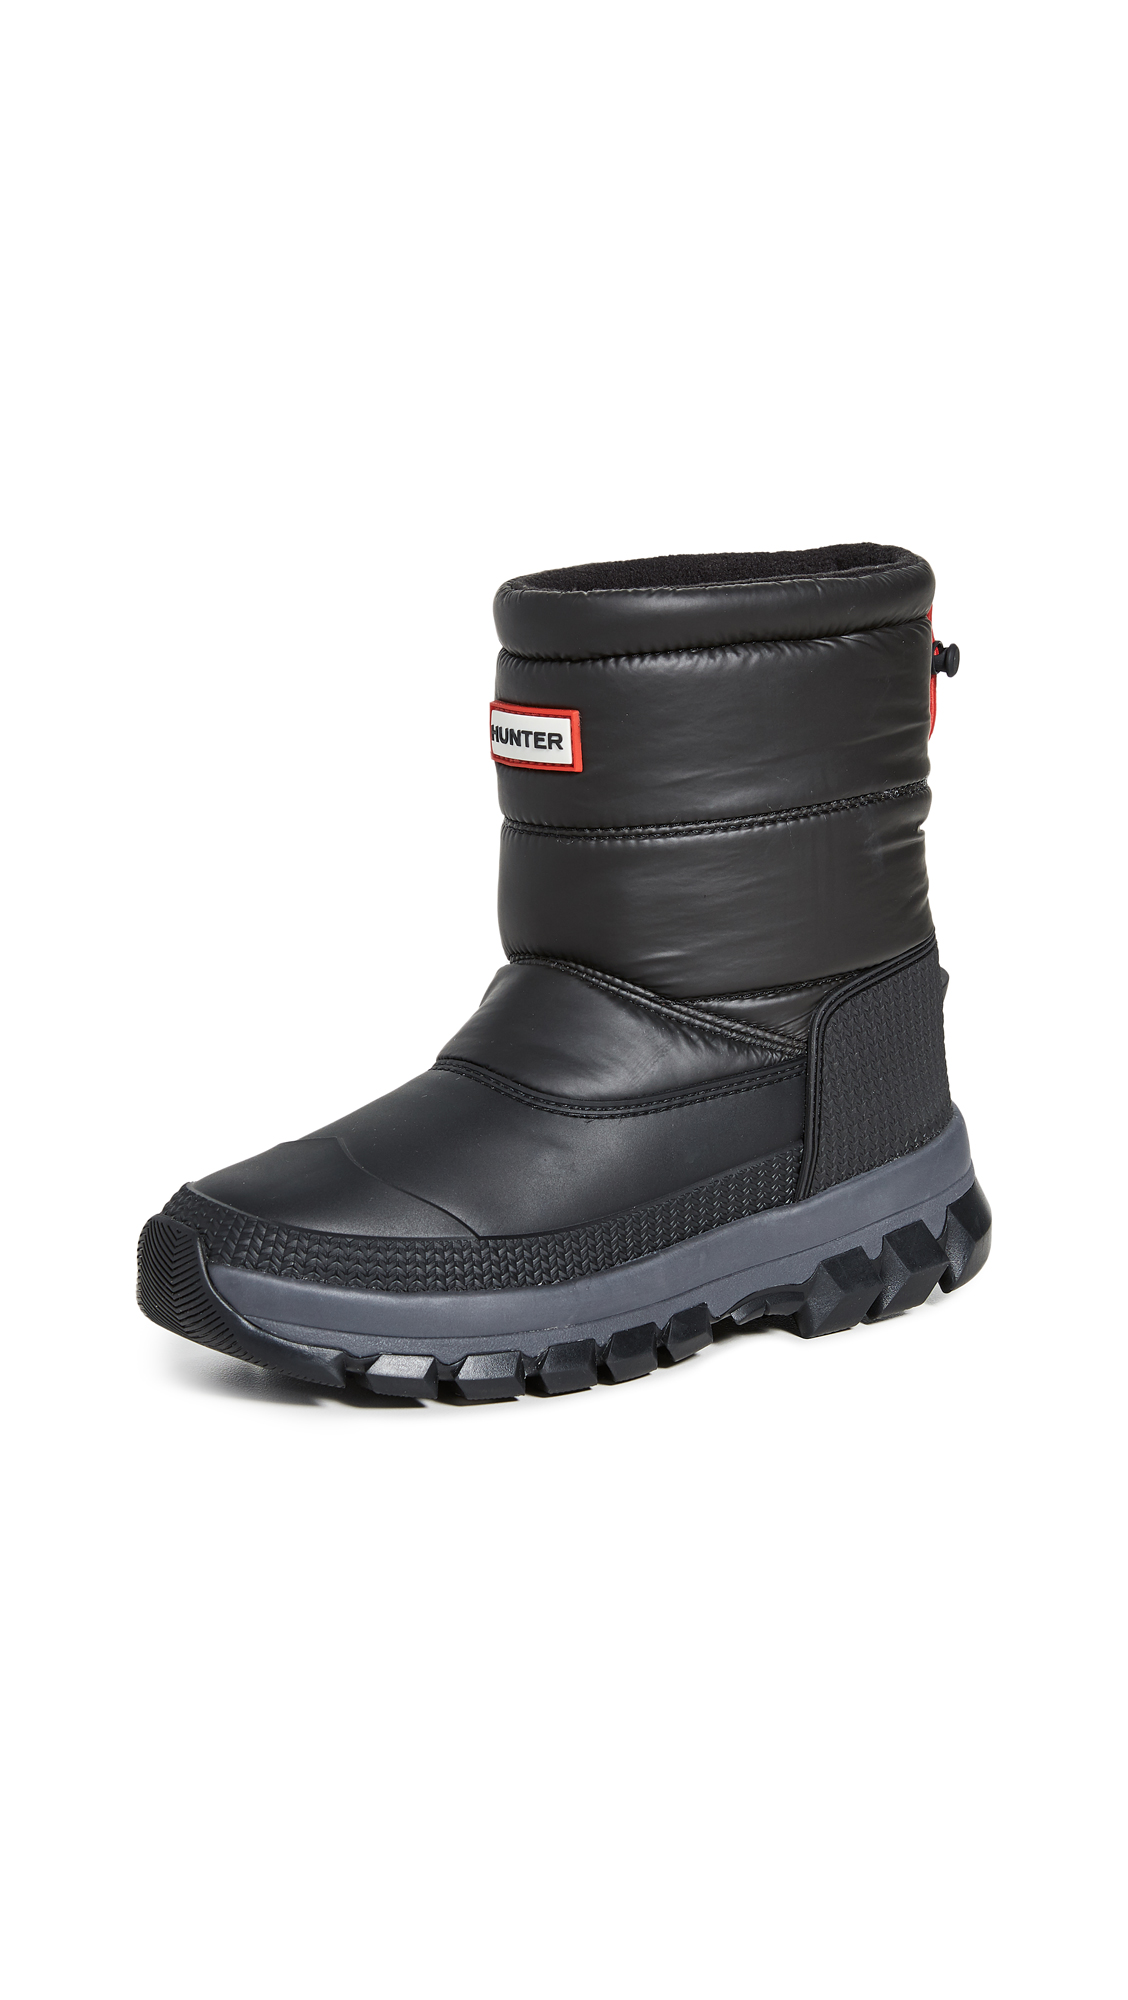 Hunter Boots Original Snow Short Boots - 40% Off Sale